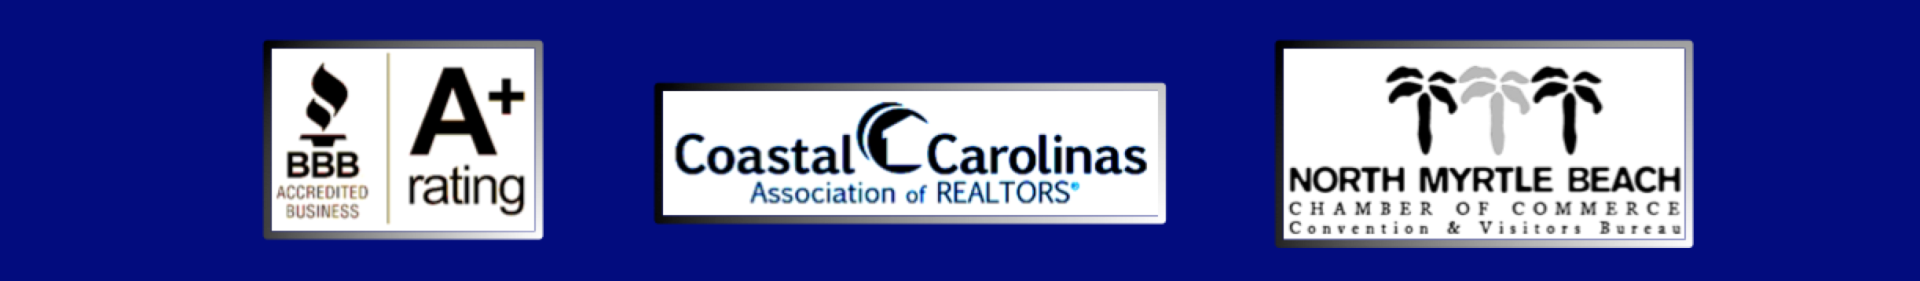 http://carolinapalm.com/custimages/1website/CCAR%20BBB%20Chamber%20Blue.png